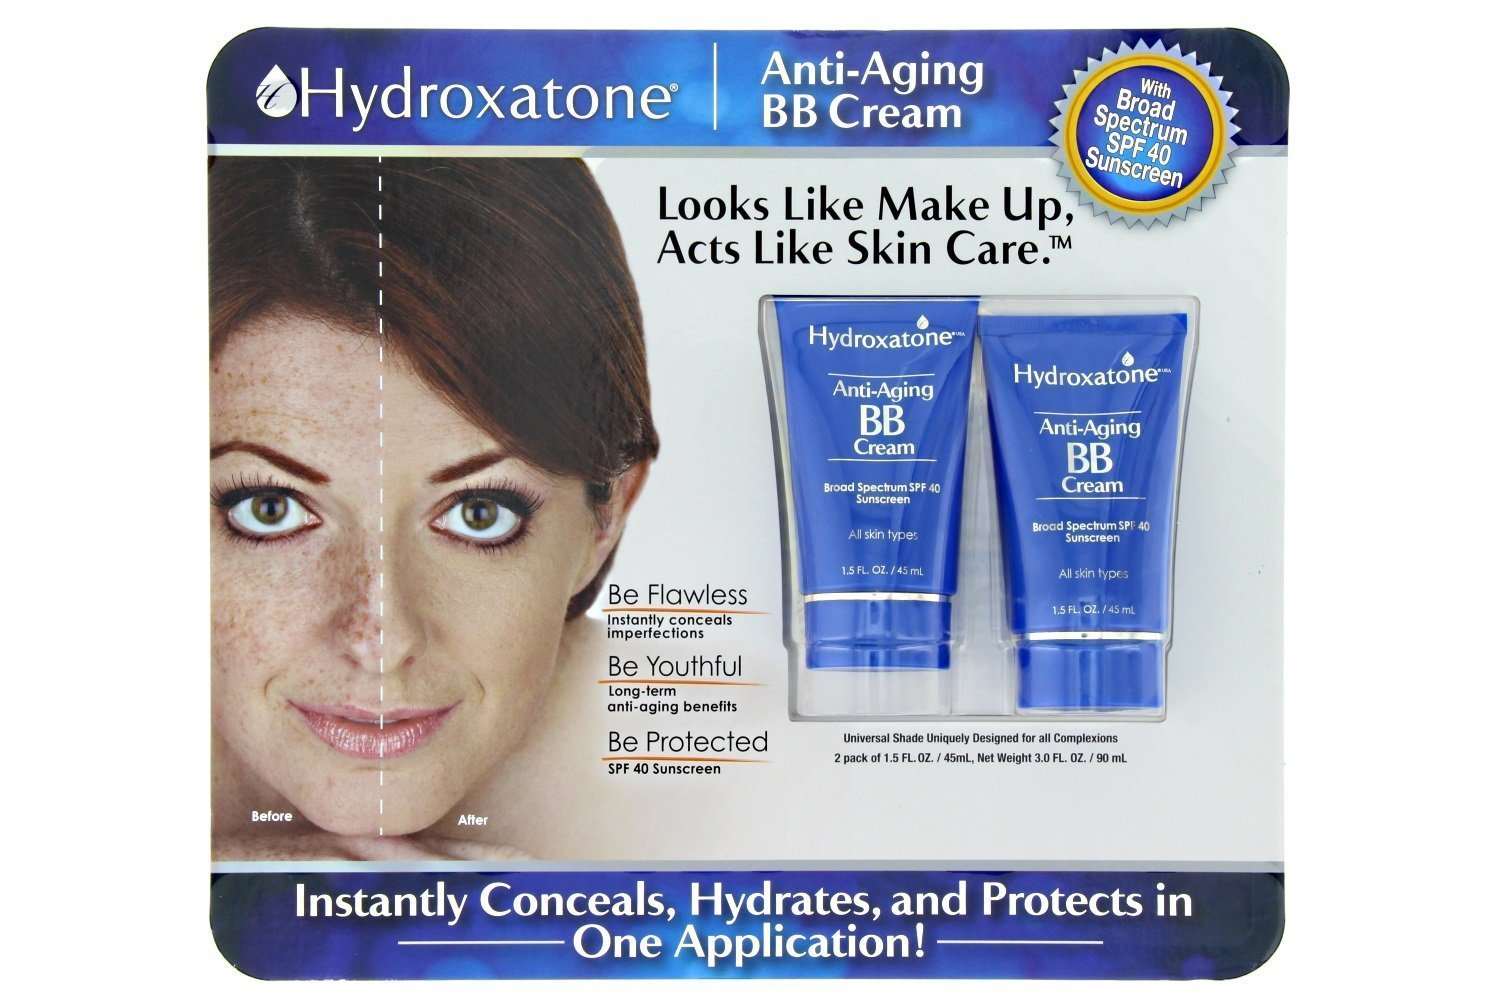 How safe are hydroxatone facial products